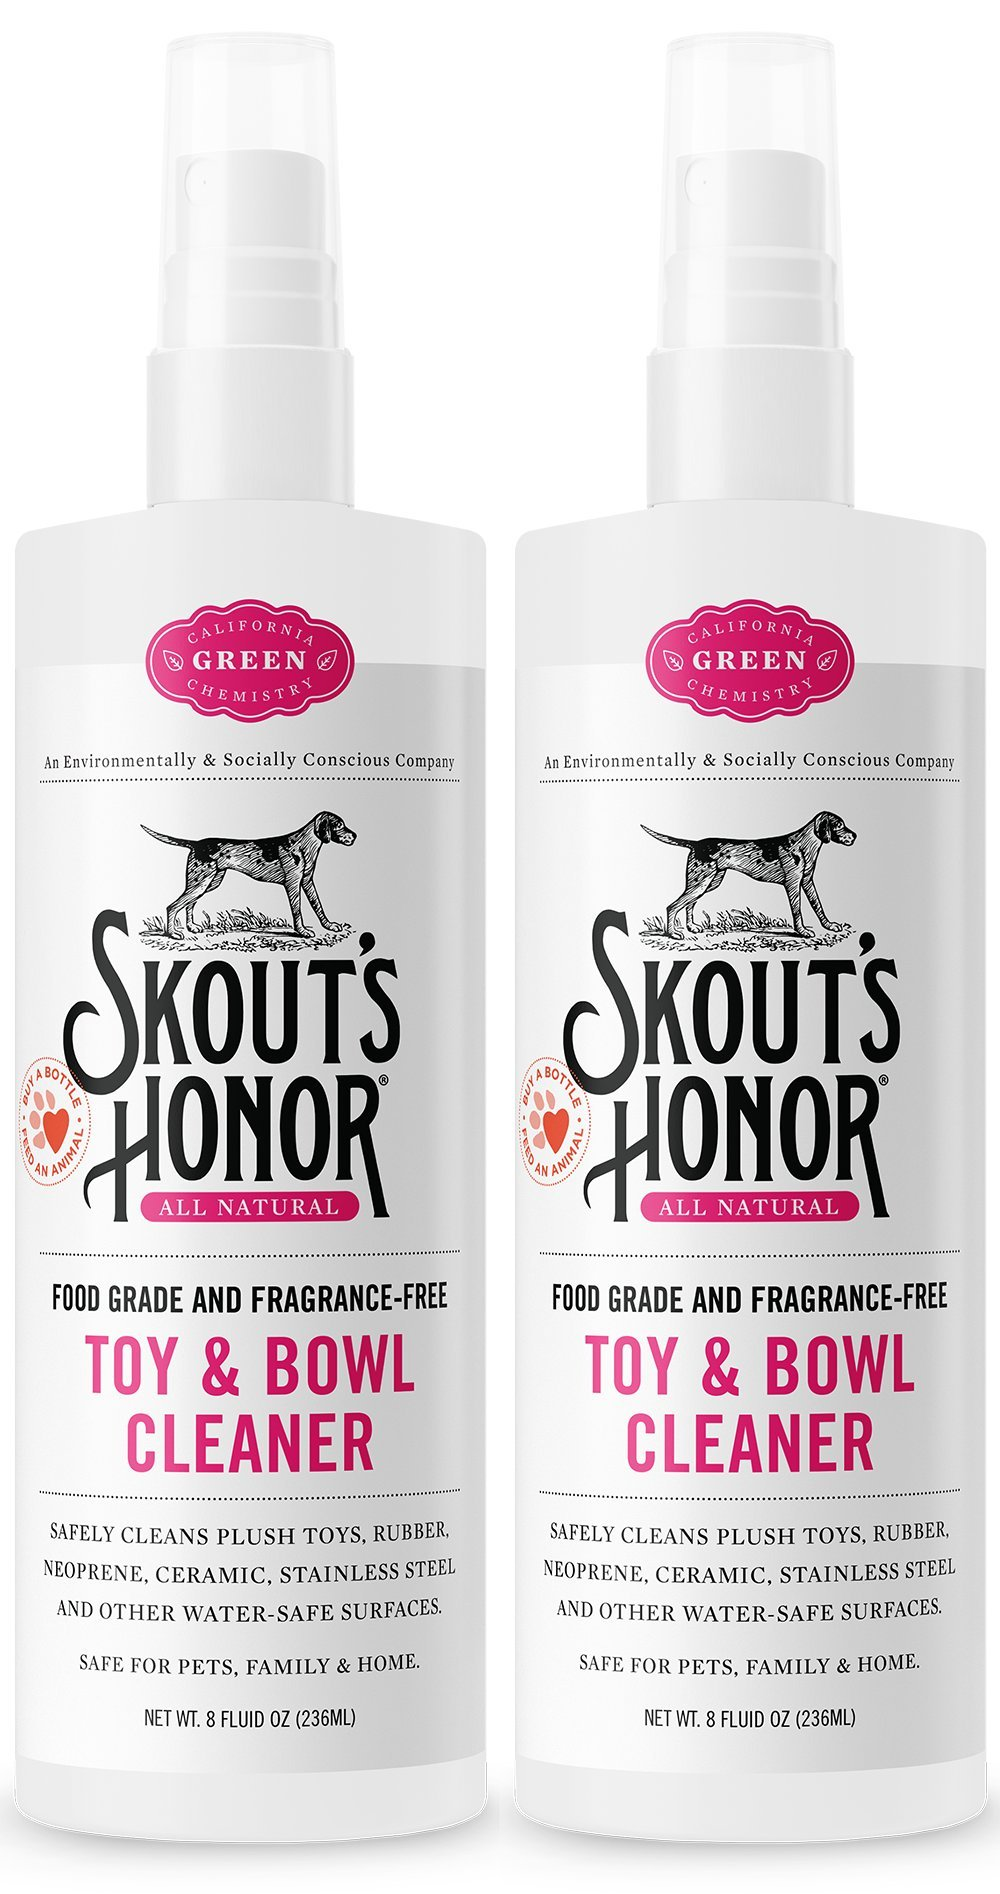 SKOUT'S HONOR Professional Strength Toy and Bowl Cleaner